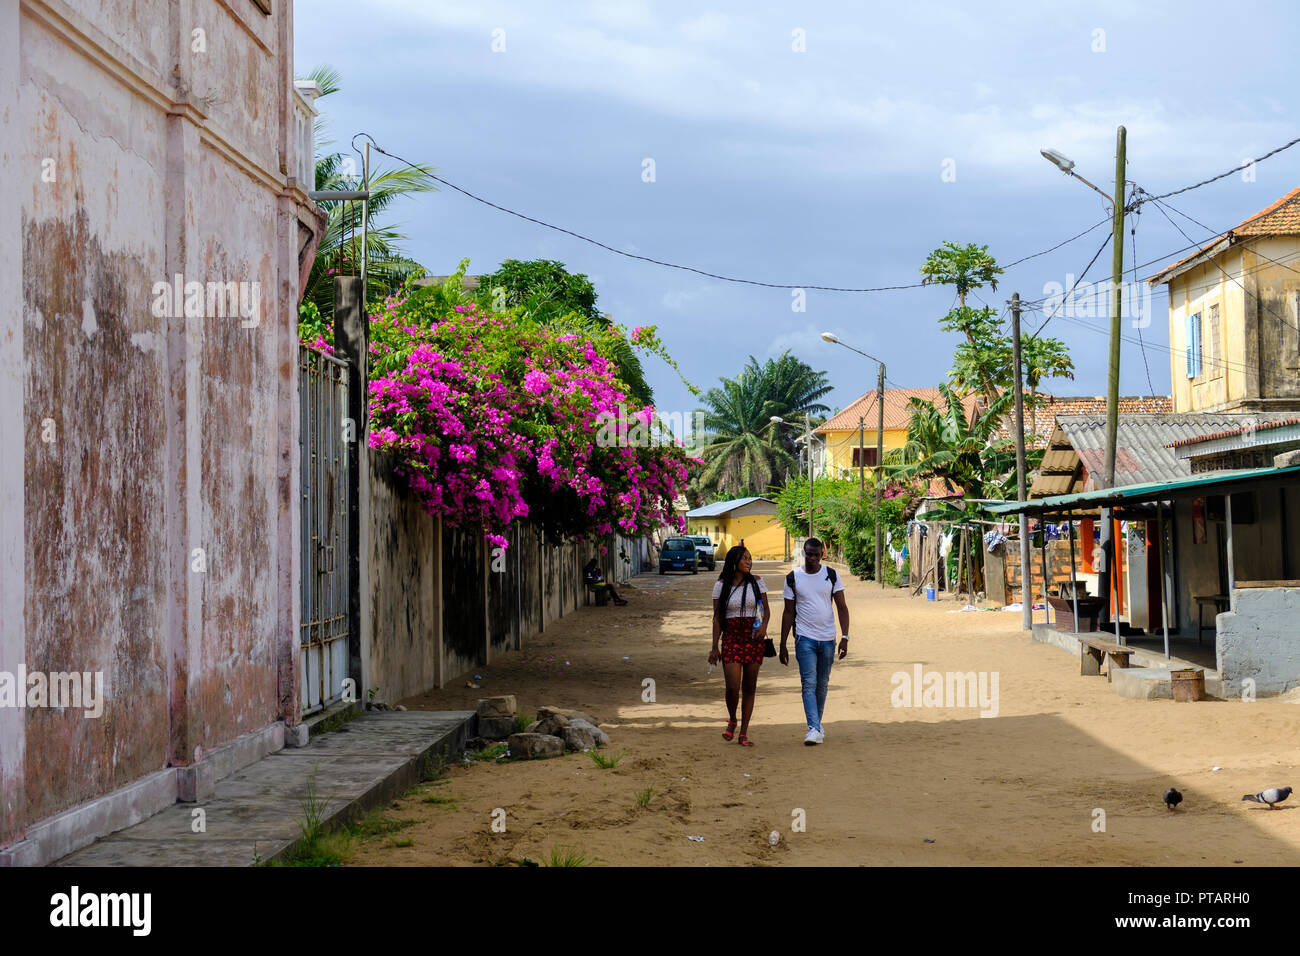 GRAND BASSAM, COTE DIVOIRE – APRIL 9 2018: Young couple stroll through bougainvillea lined street in old colonial district of former capital of Ivory  - Stock Image